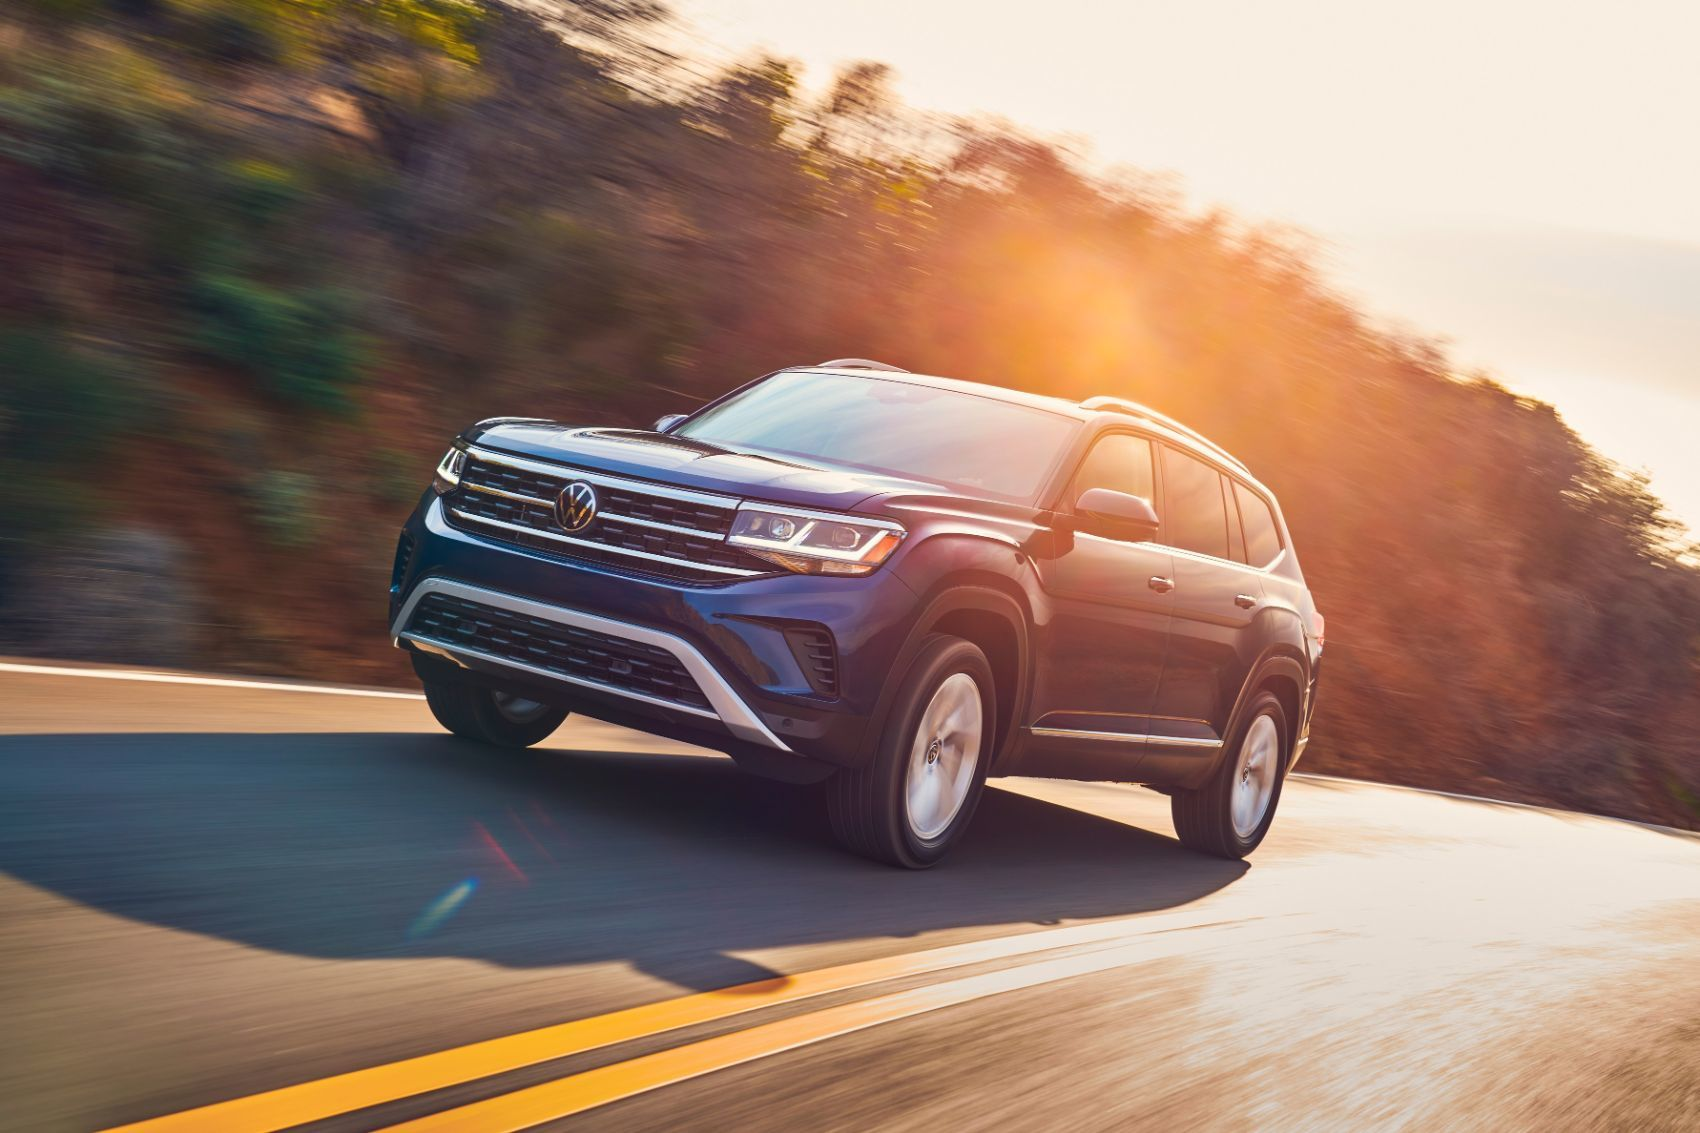 2021 VW Atlas: Quick But Detailed Overview 14